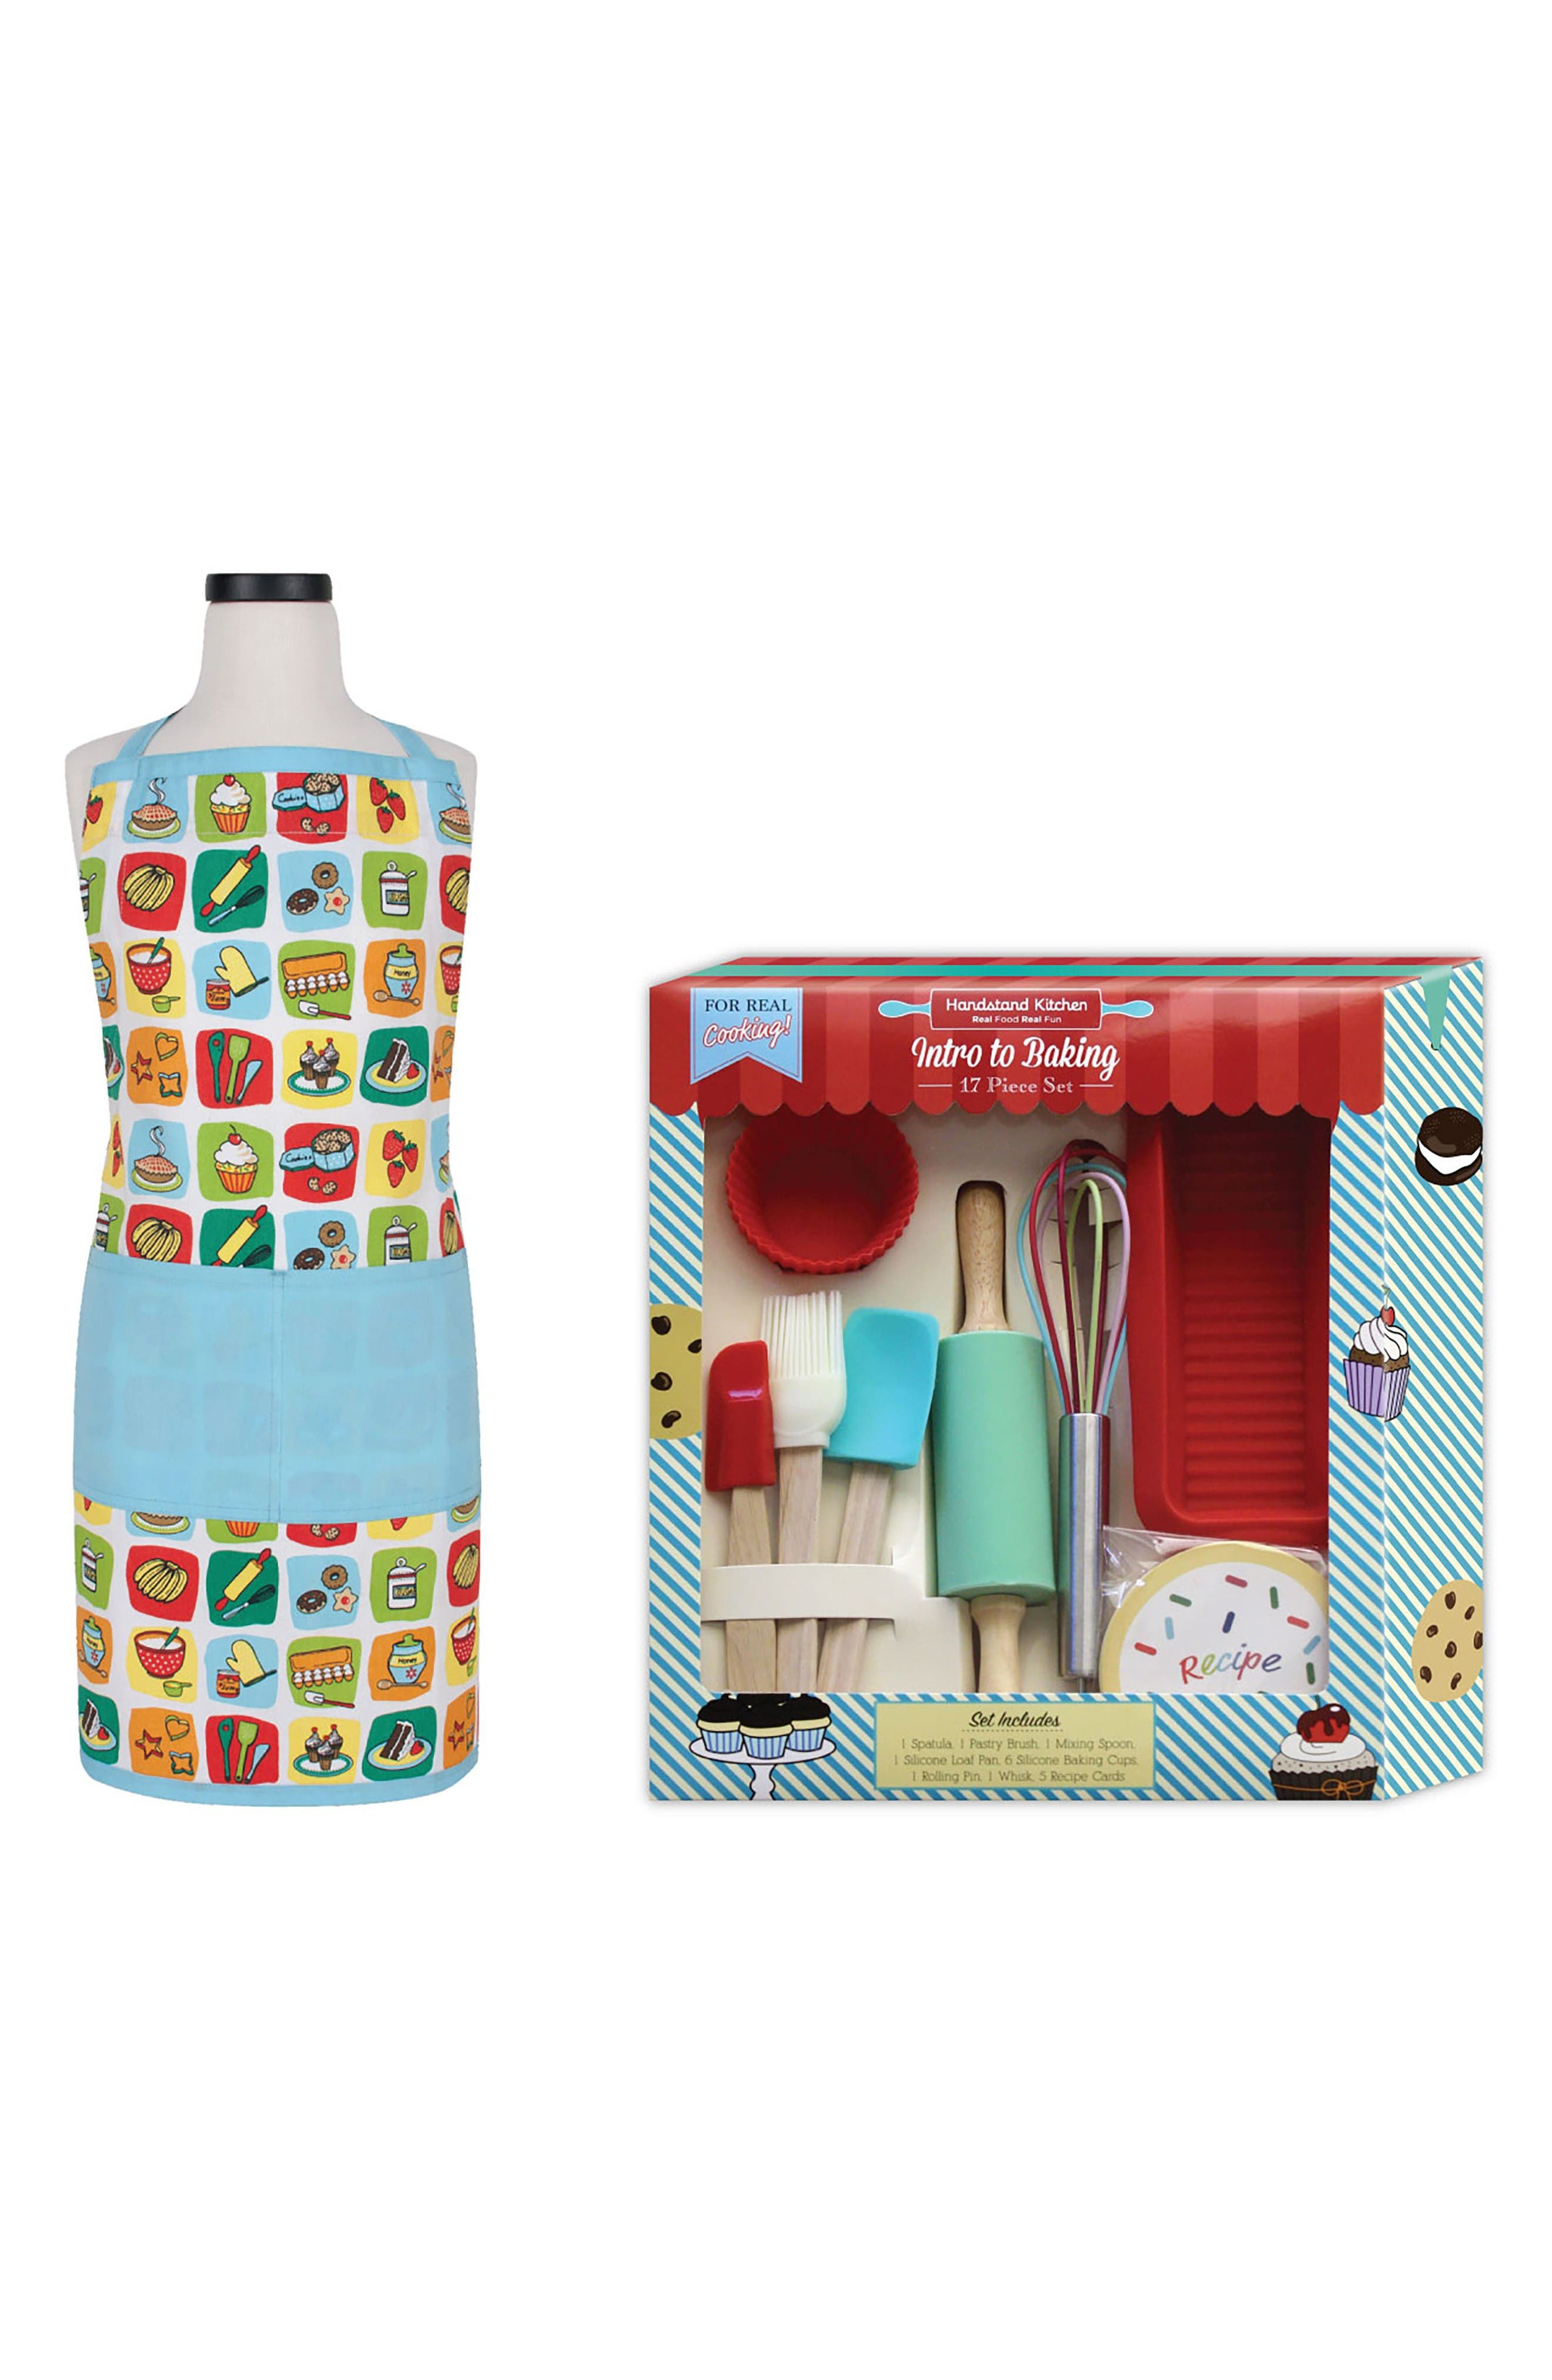 Alternate Image 1 Selected - Handstand Kids Intro to Baking Kit & Apron Set